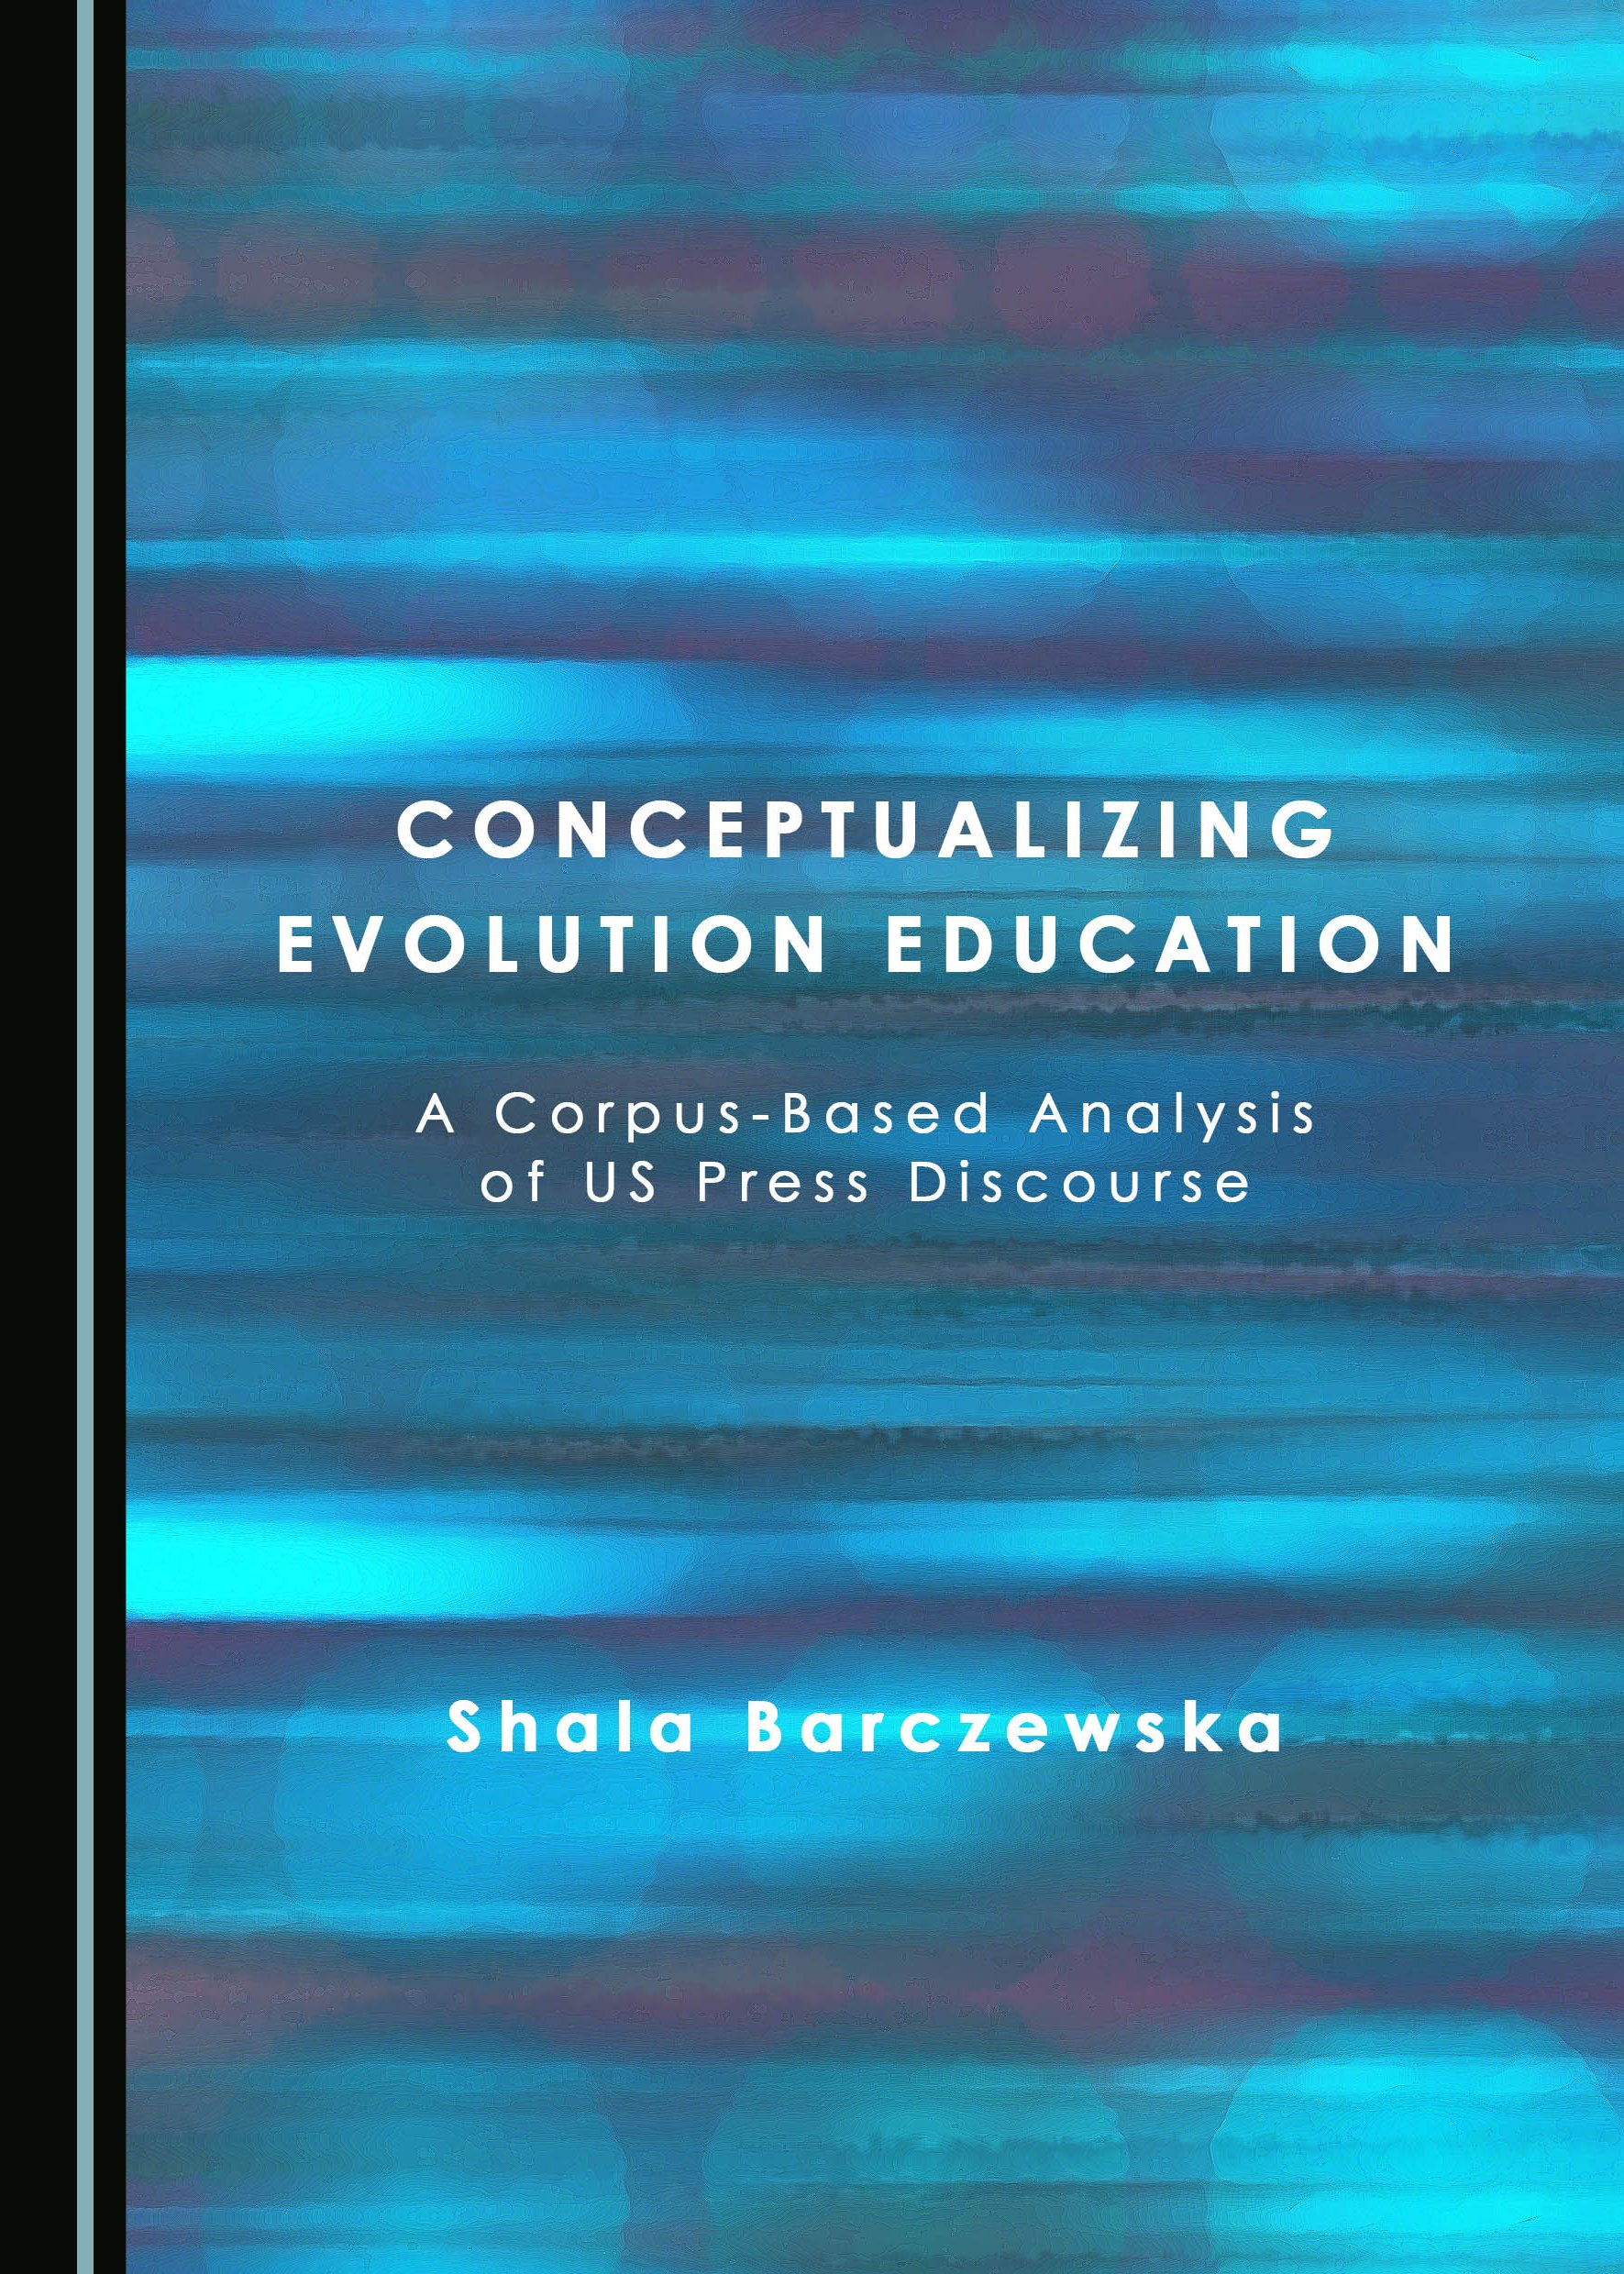 Conceptualizing Evolution Education: A Corpus-Based Analysis of US Press Discourse